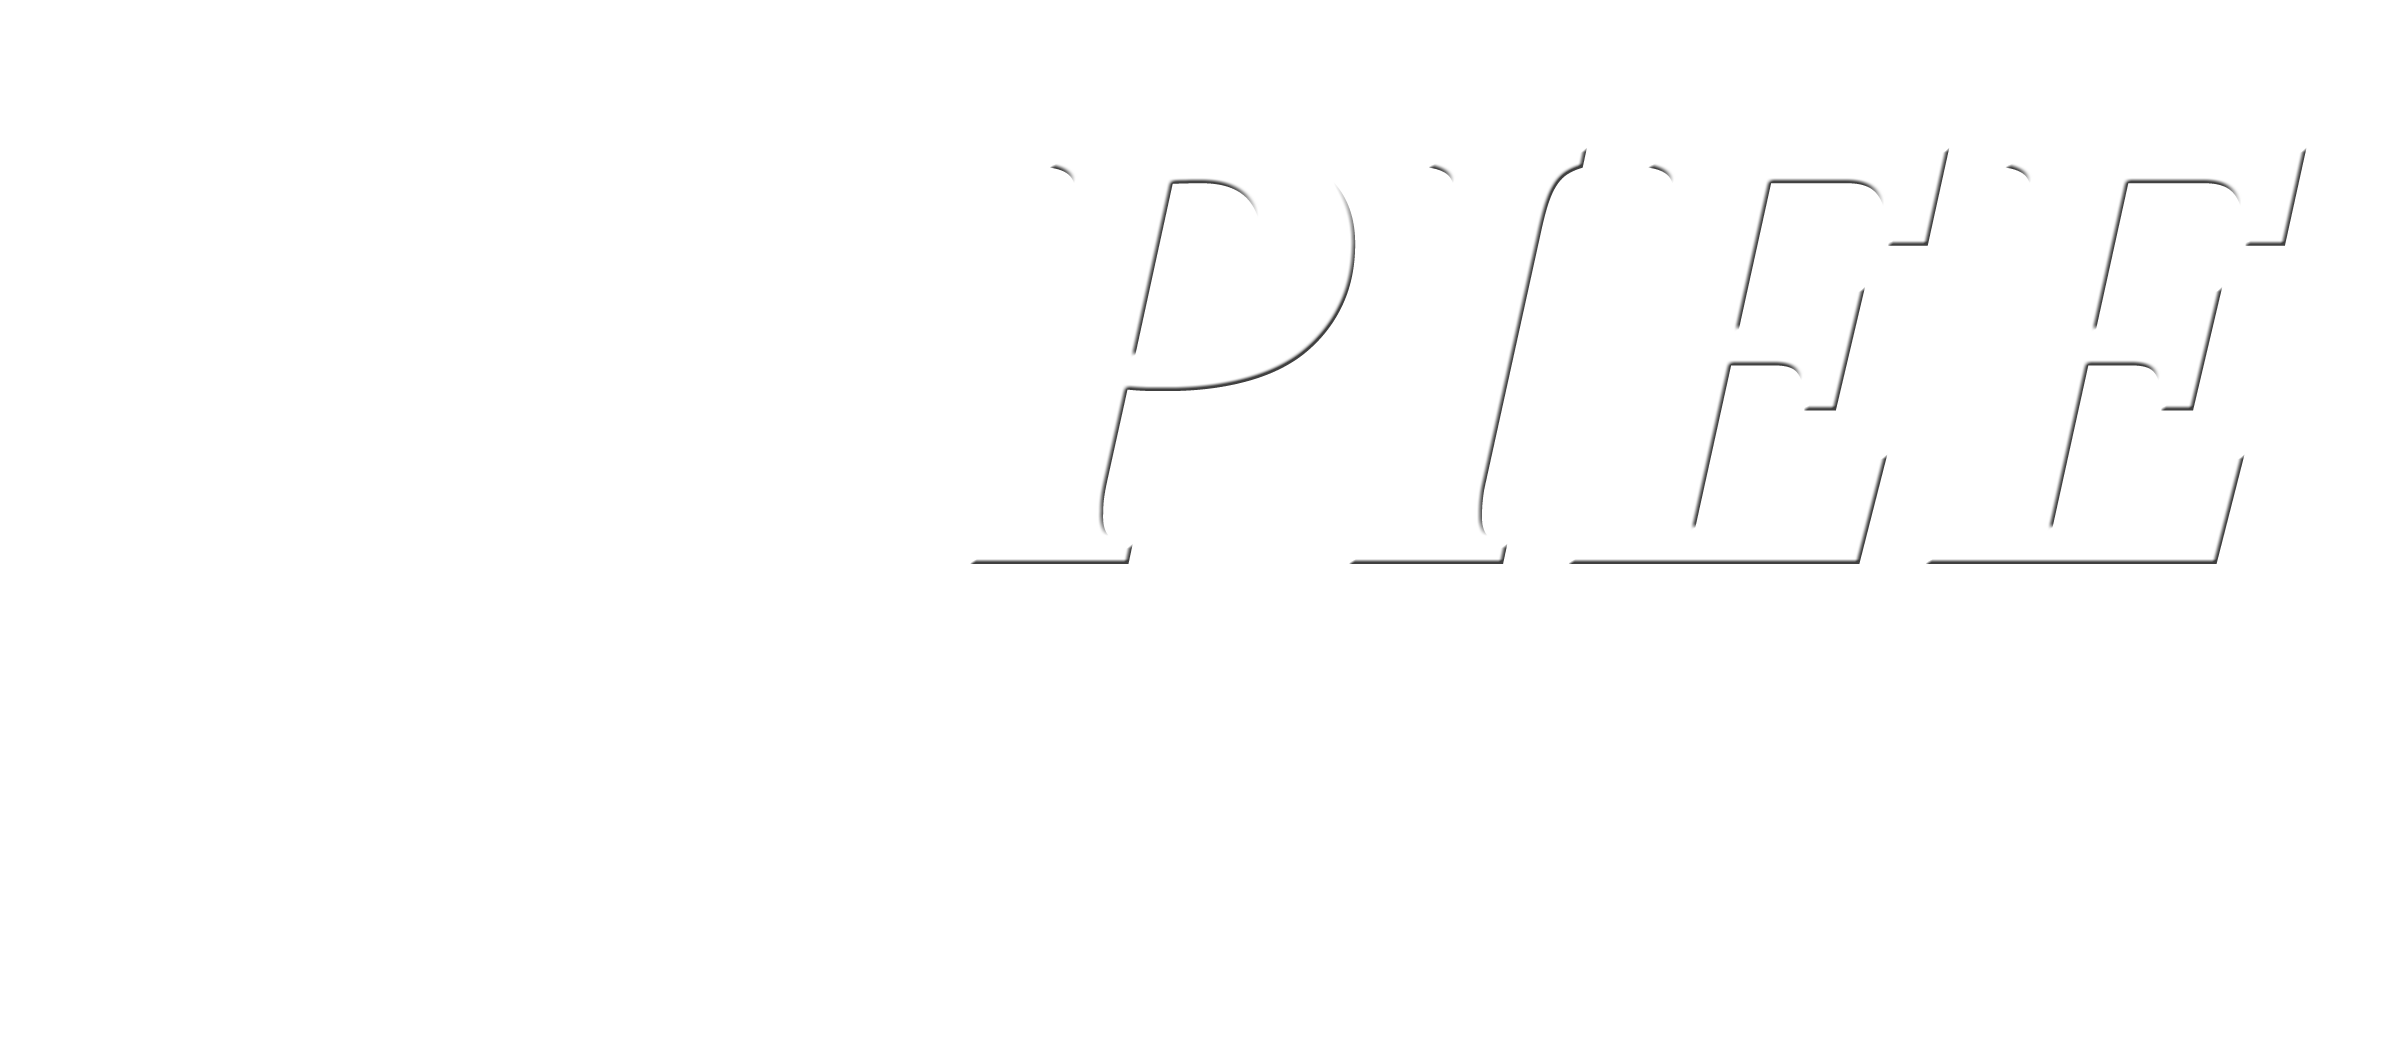 Procurement Integrated Enterprise Environment logo